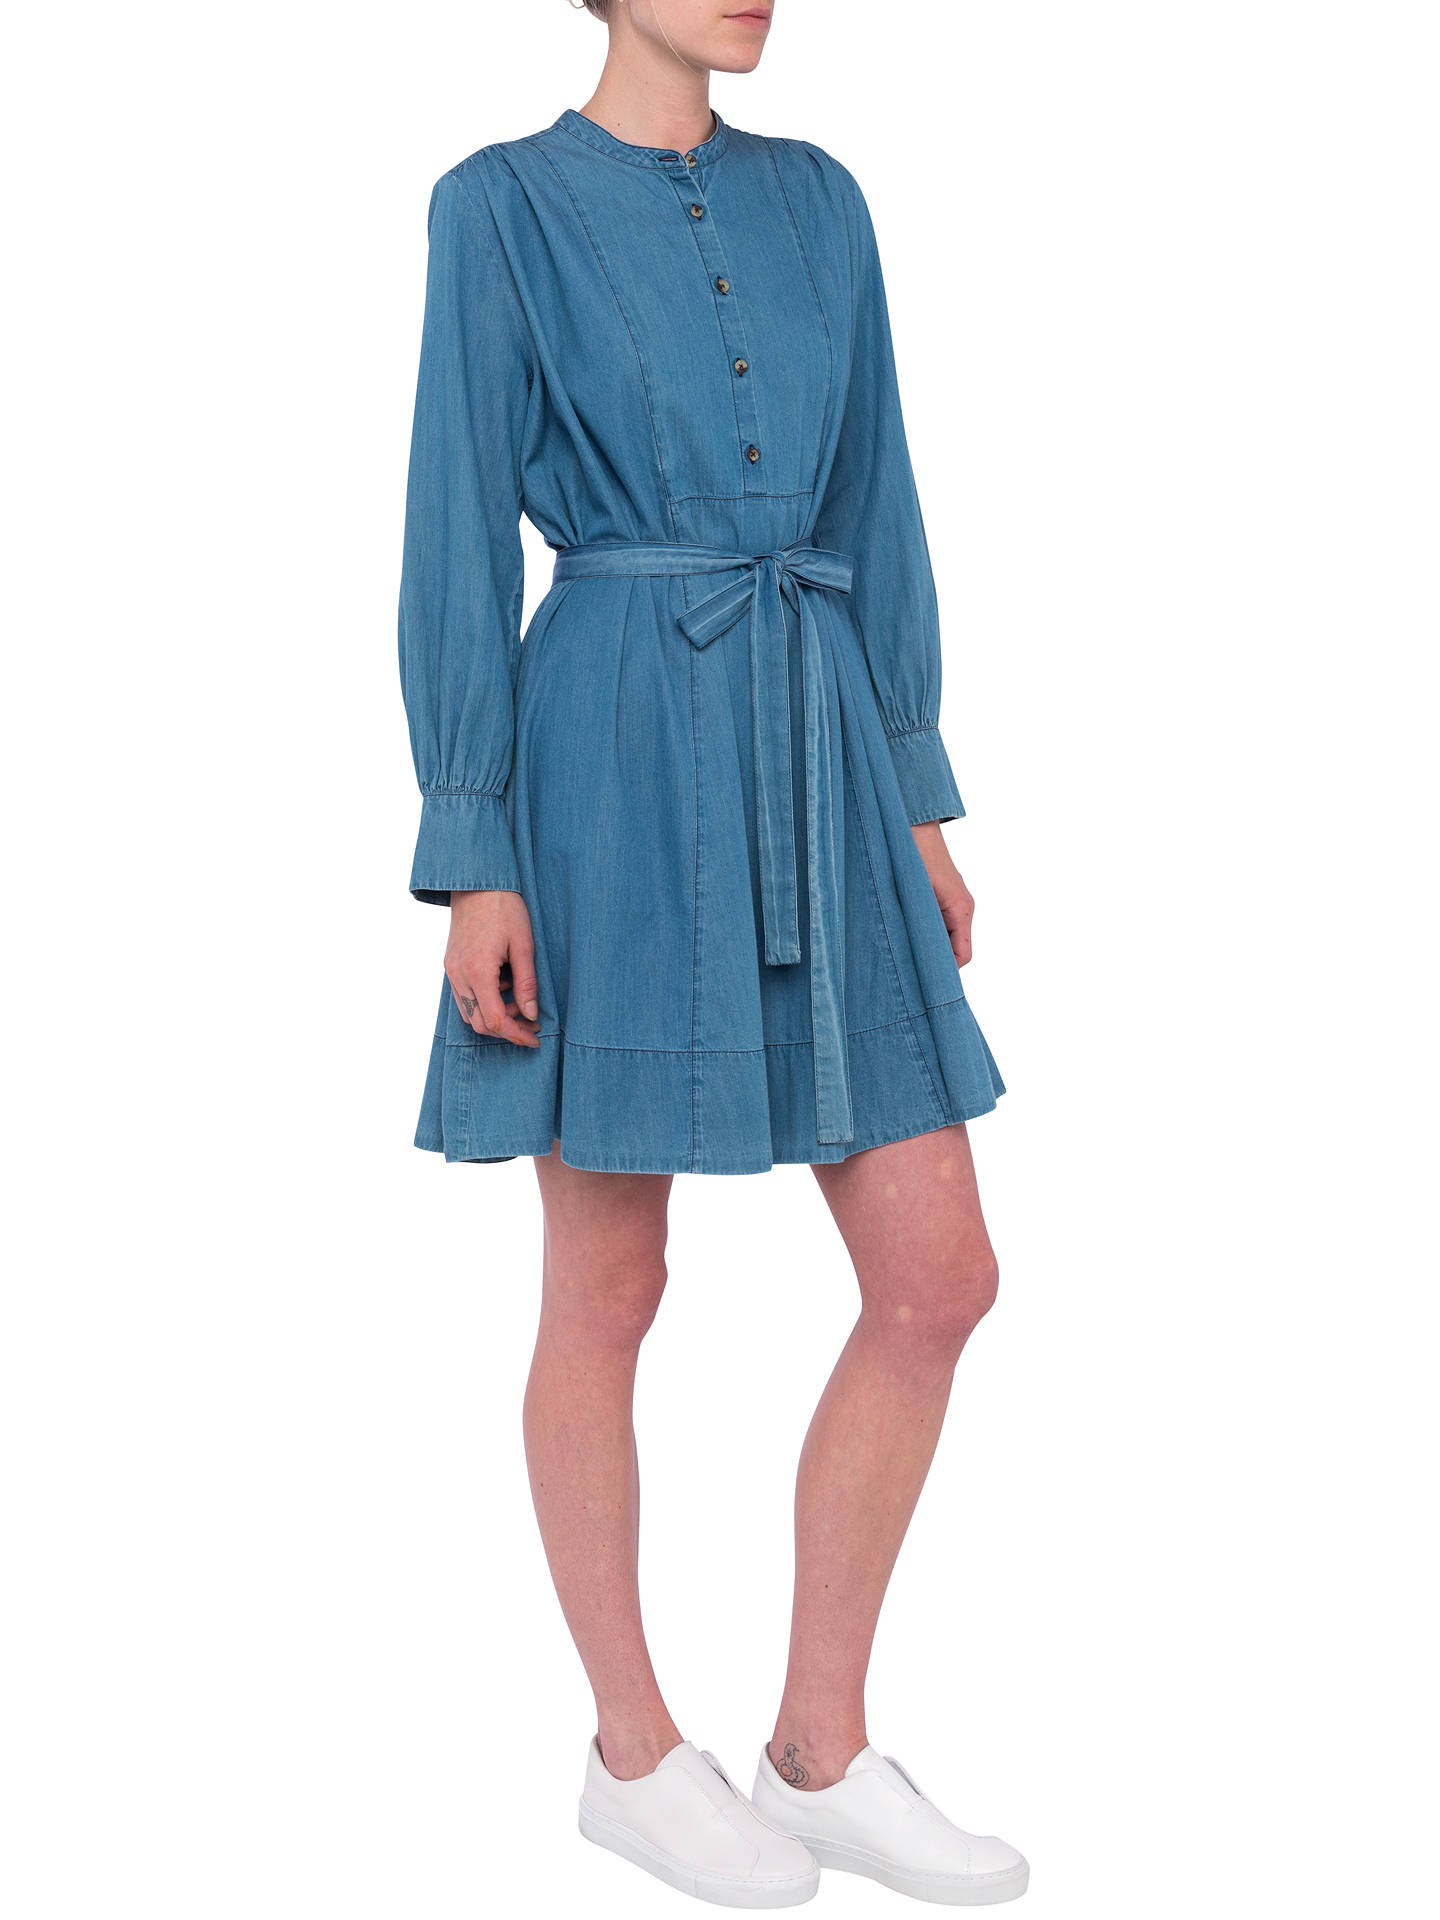 58a71860f ... Buy French Connection Tidore Chambray Dress, Bleach Blue, 6 Online at  johnlewis.com ...